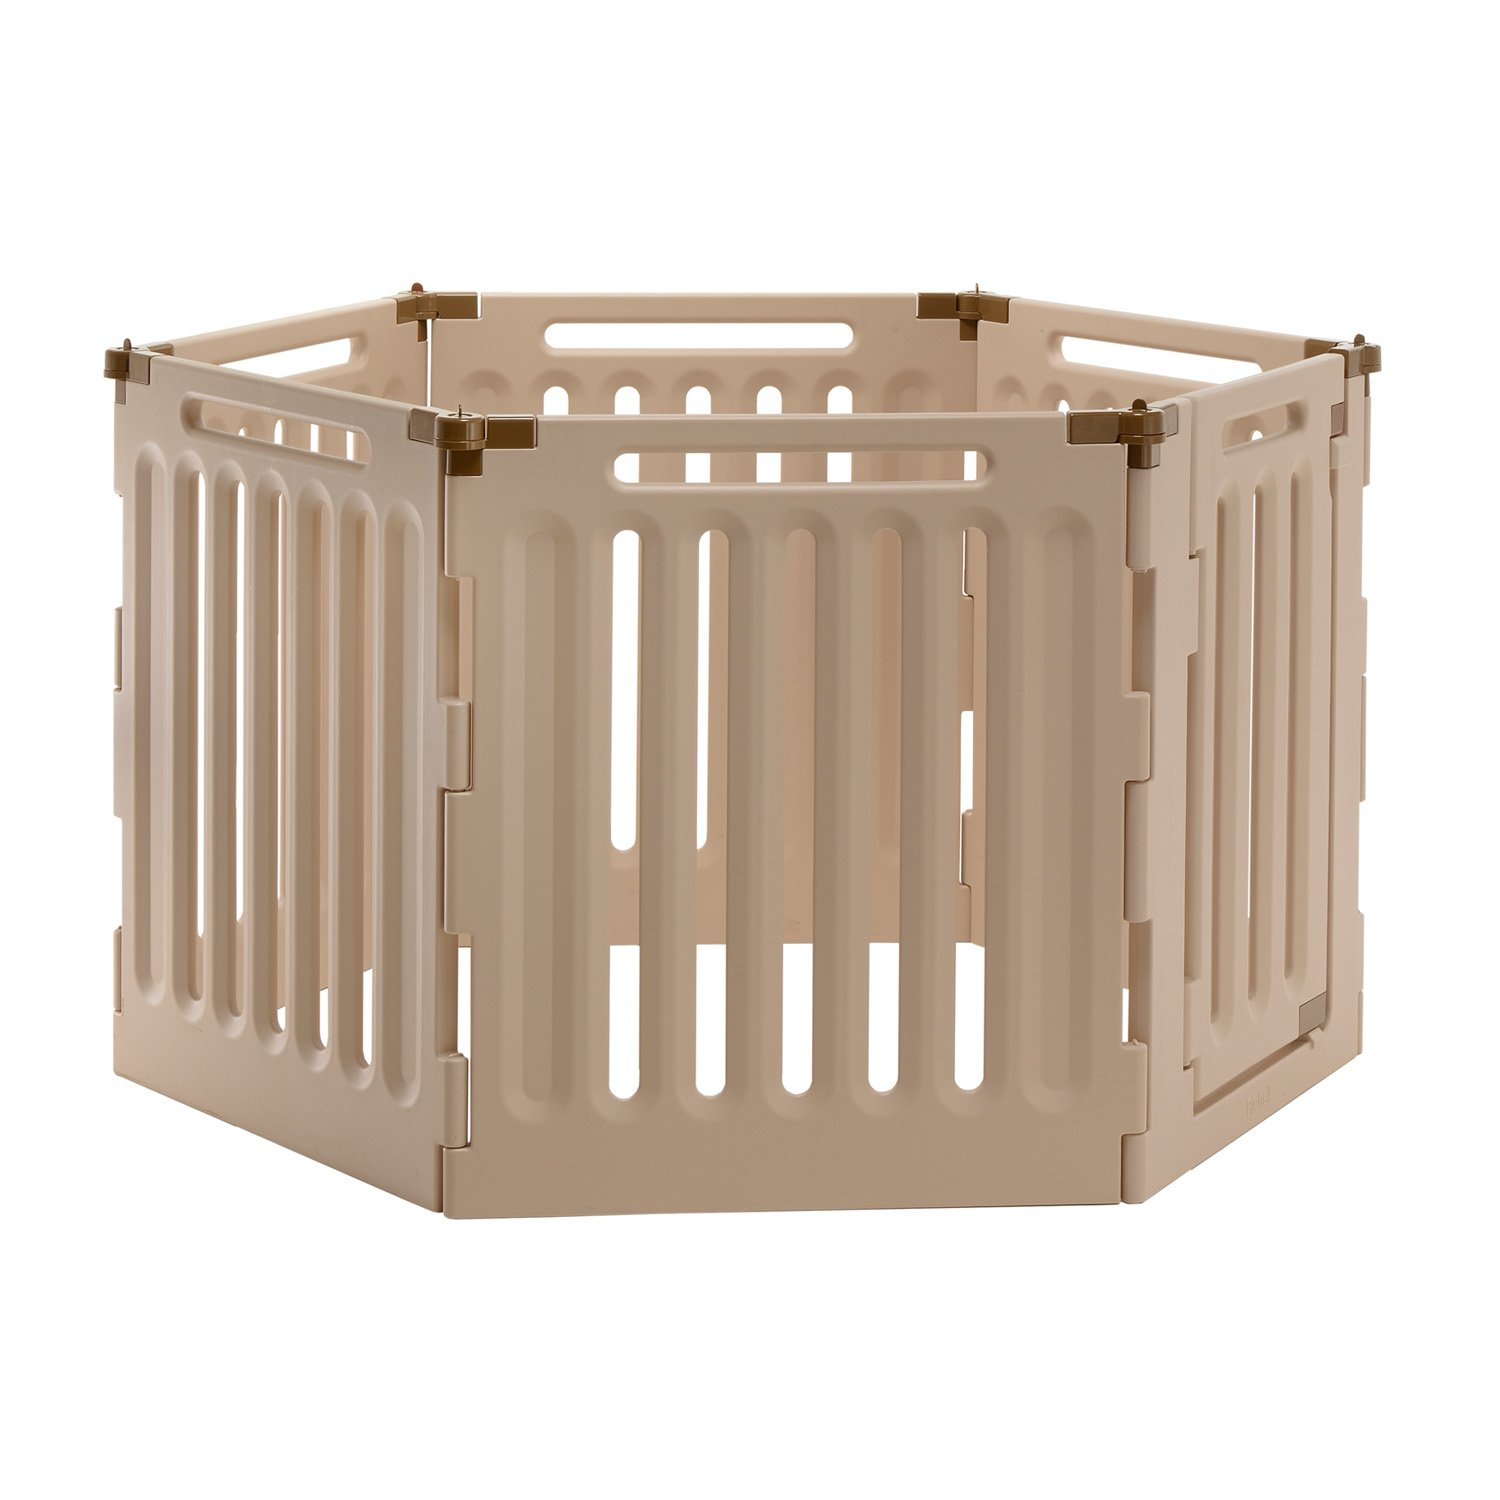 richell six panel convertible indoor outdoor play pen